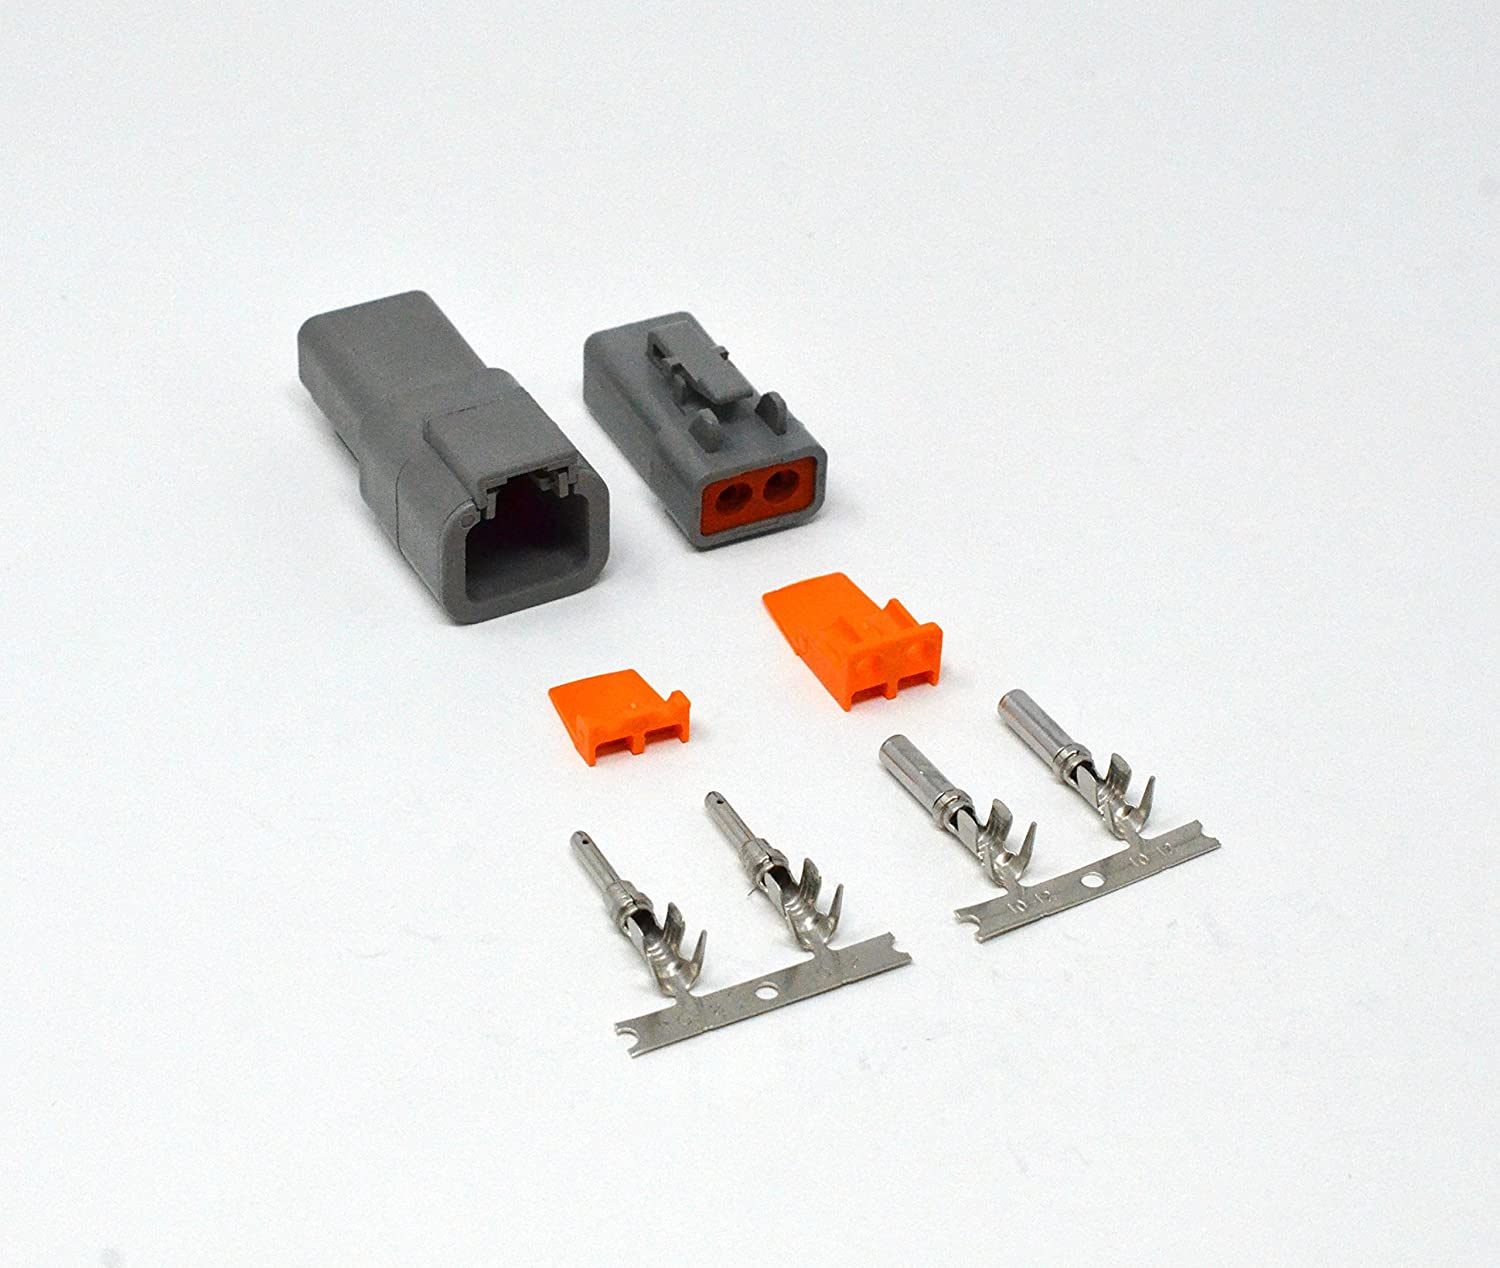 2 Way hembra DTP Series macho Multi Listado Completo Kit Enchufe Conector Deutsch